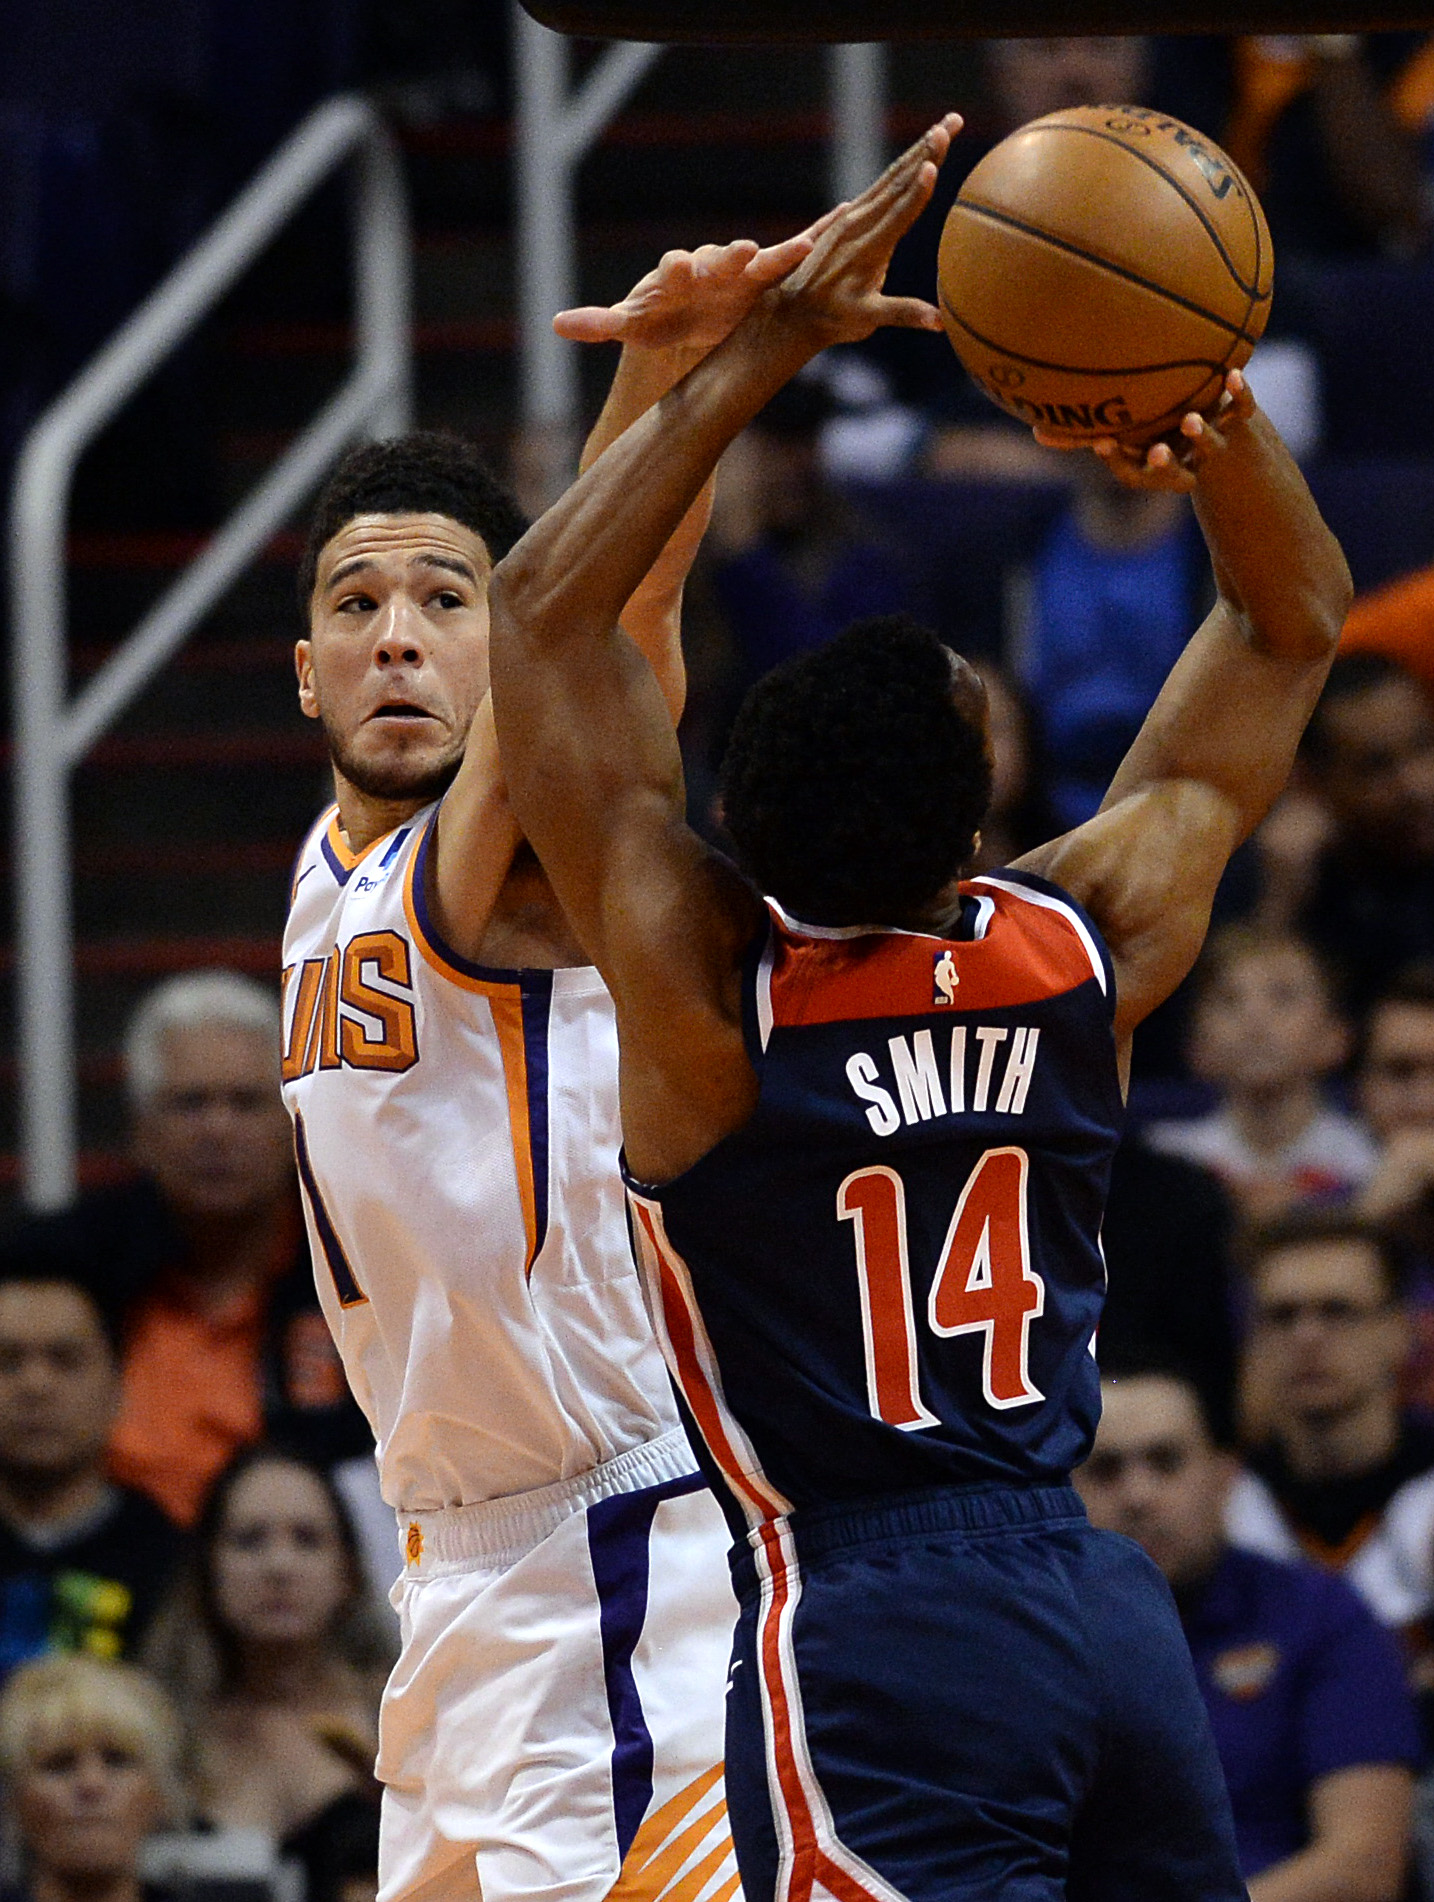 NBA: Washington Wizards at Phoenix Suns